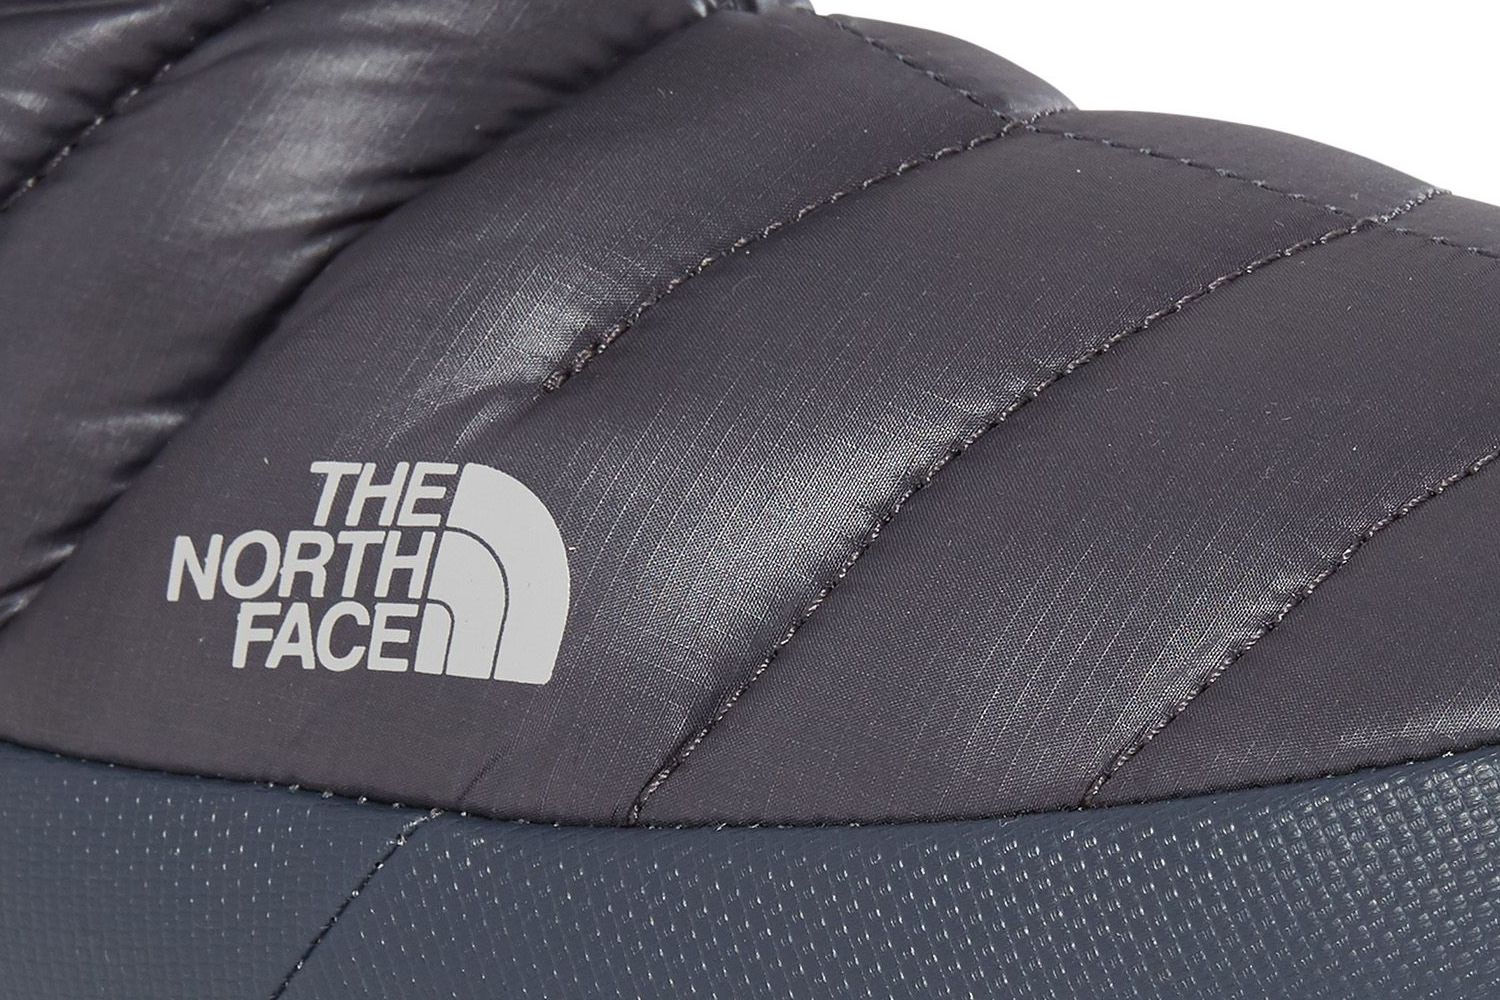 THE-NORTH-FACE-TNF-ThermoBall-Traction-Insulated-Warm-Shoes-Boots-Womens-New thumbnail 4